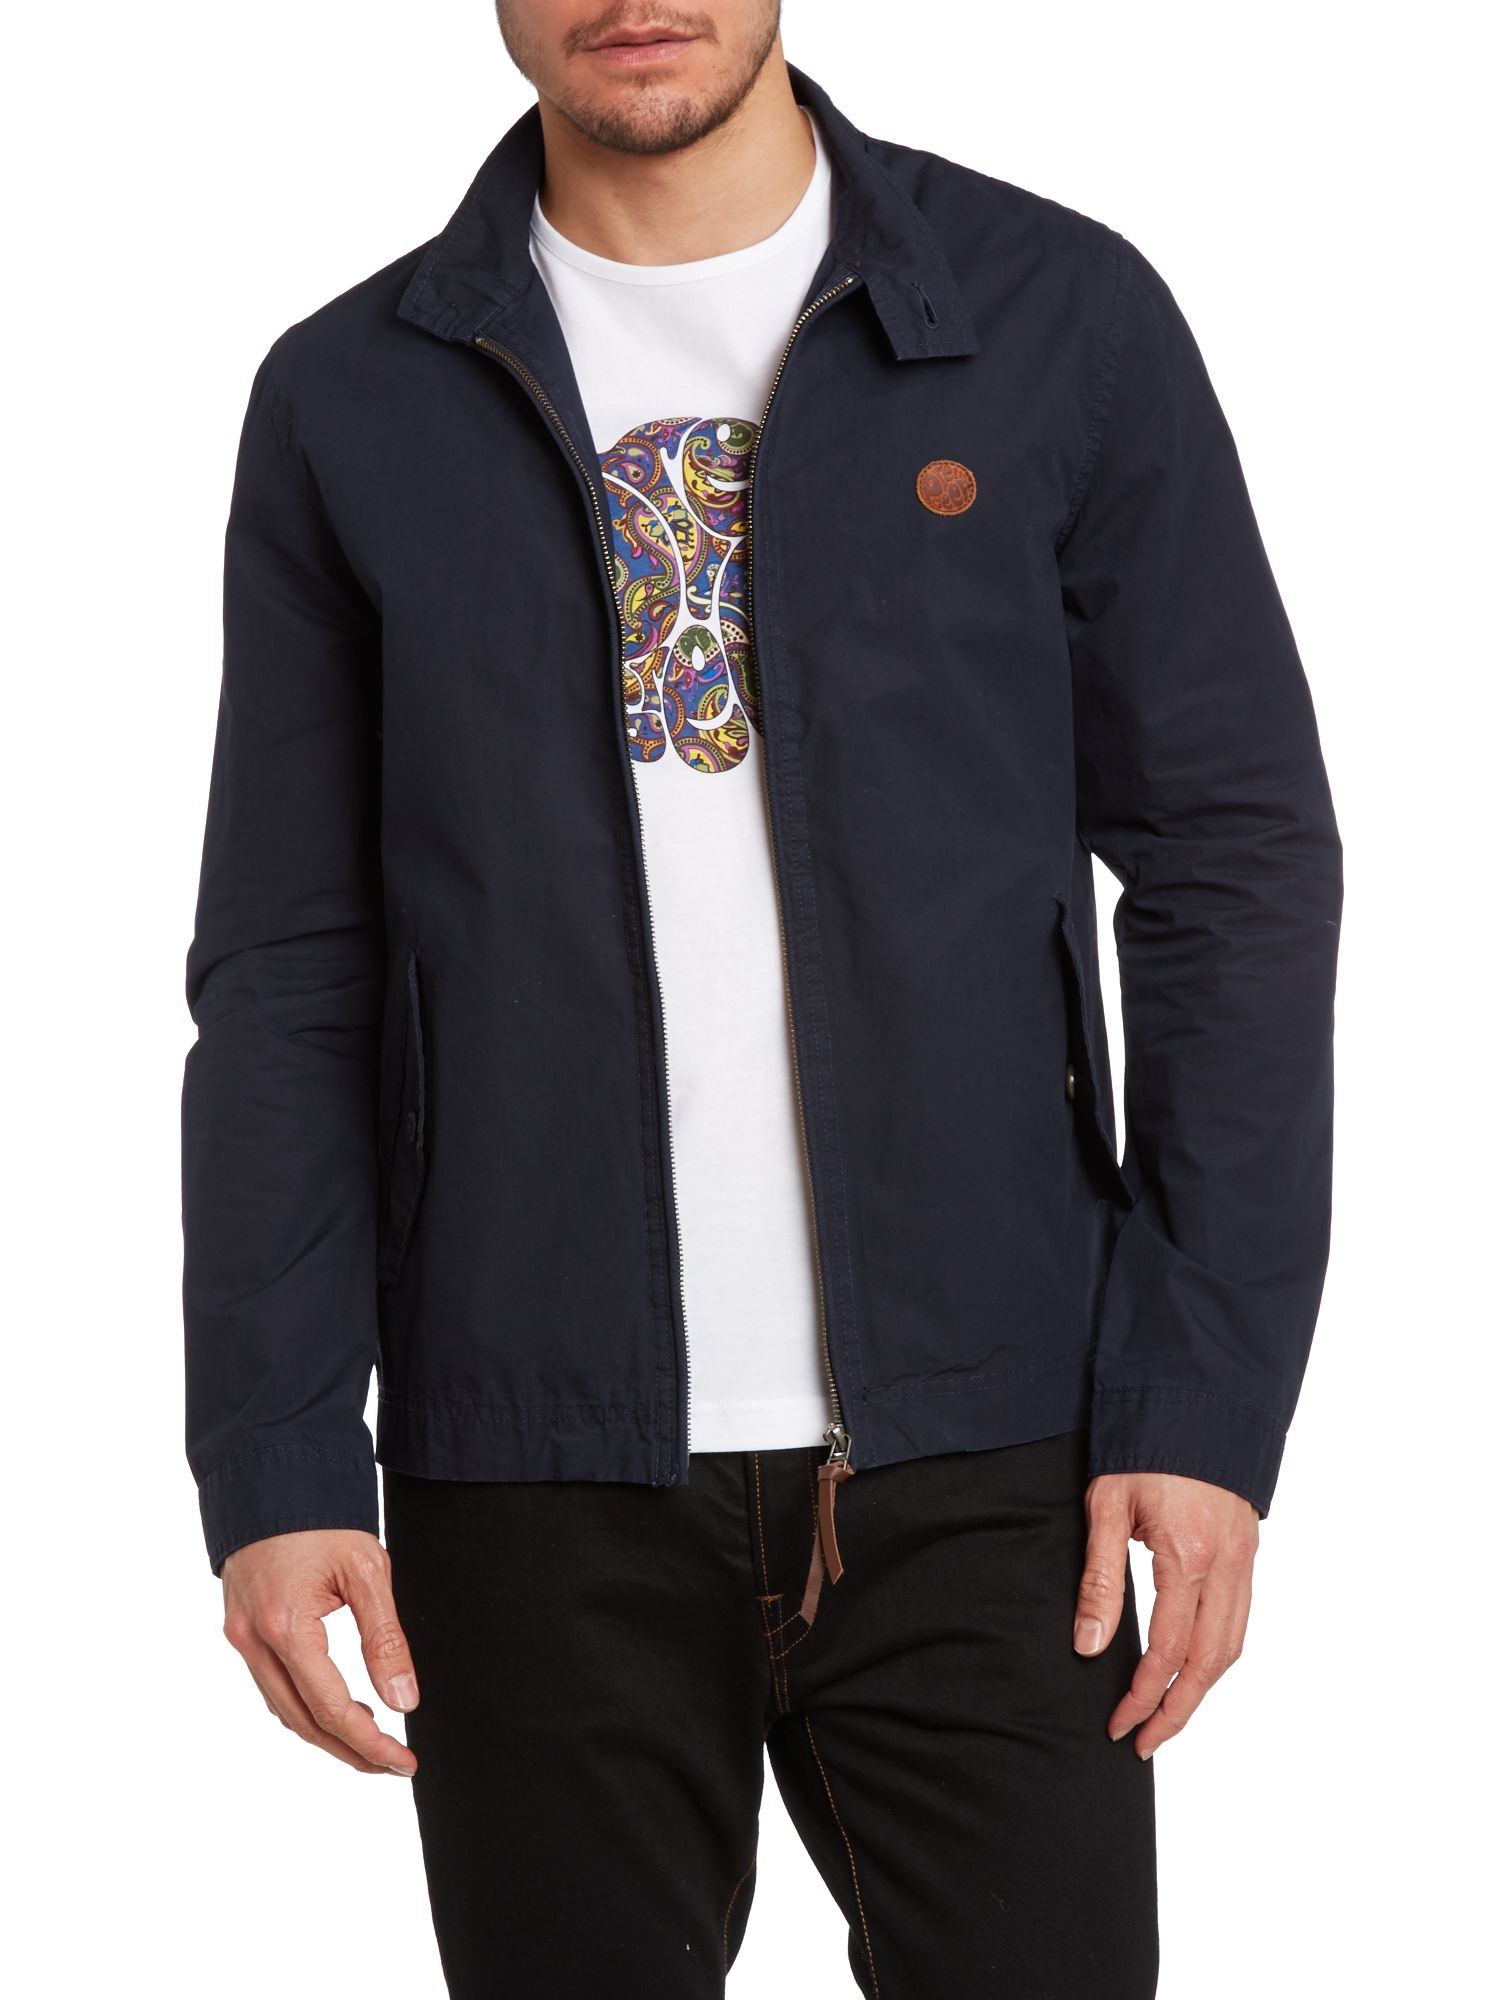 Kingsway harrington jacket